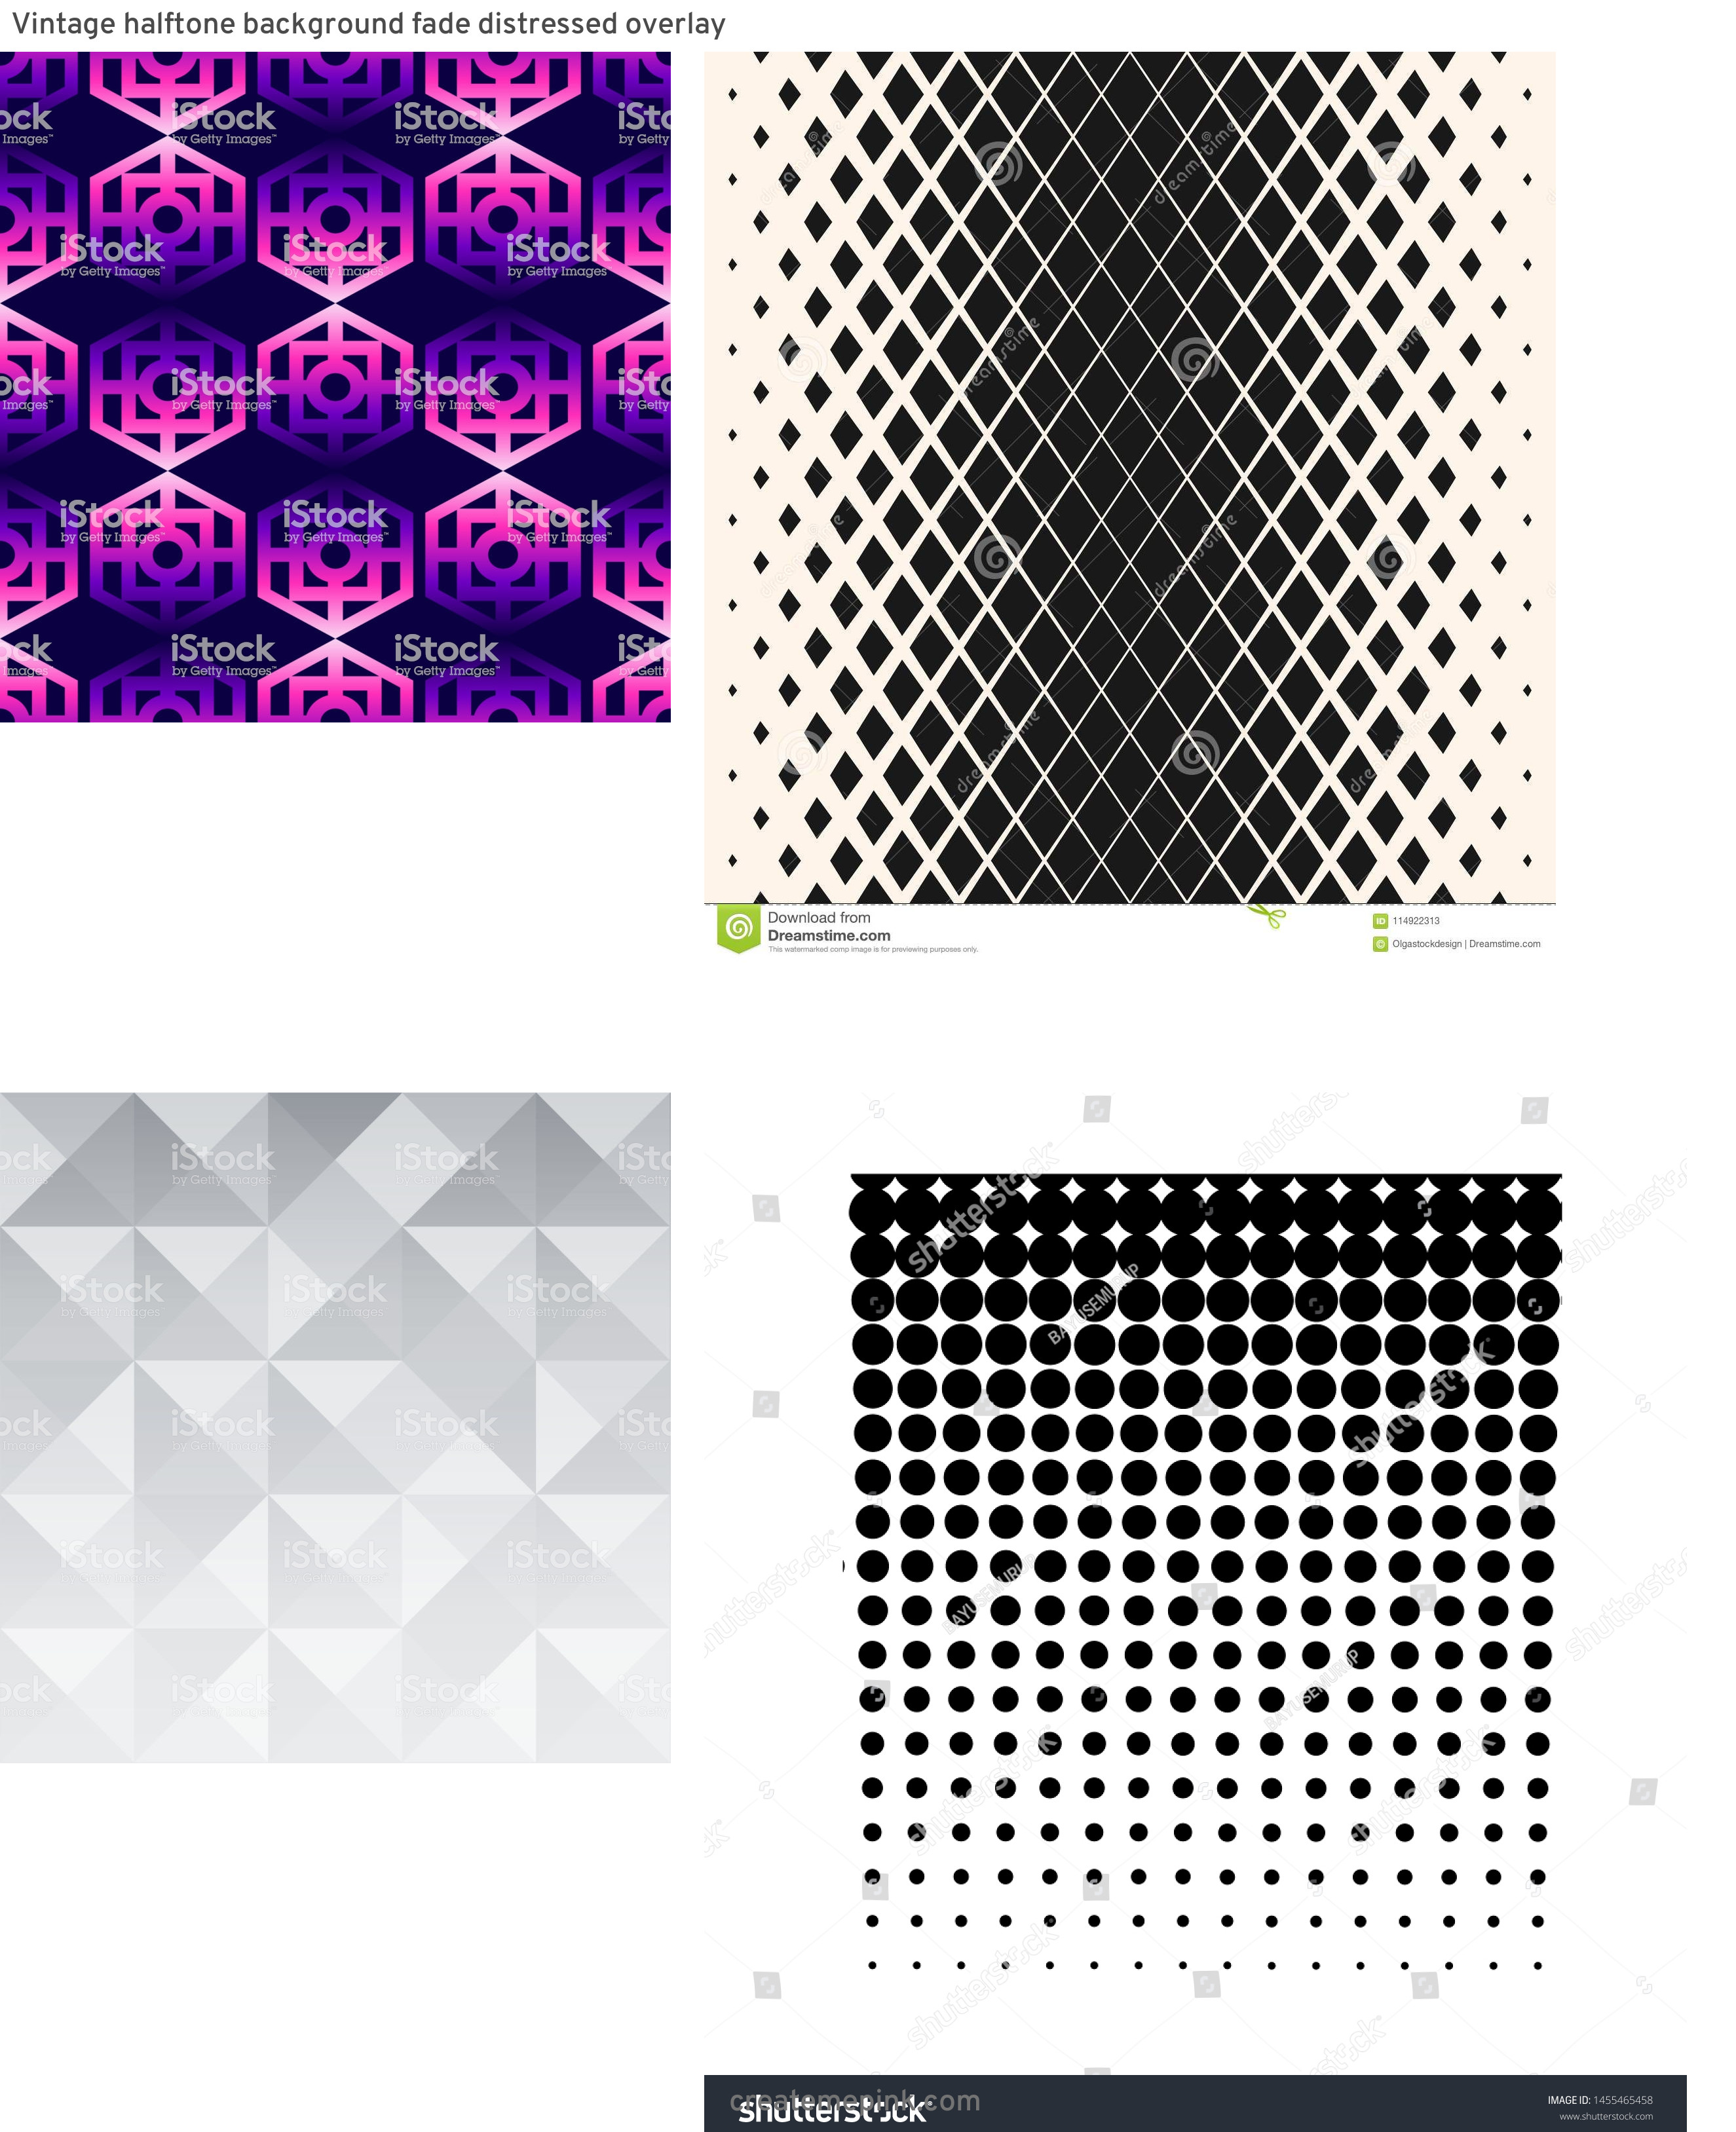 Modern Fading Vector Pattern: Vintage Halftone Background Fade Distressed Overlay